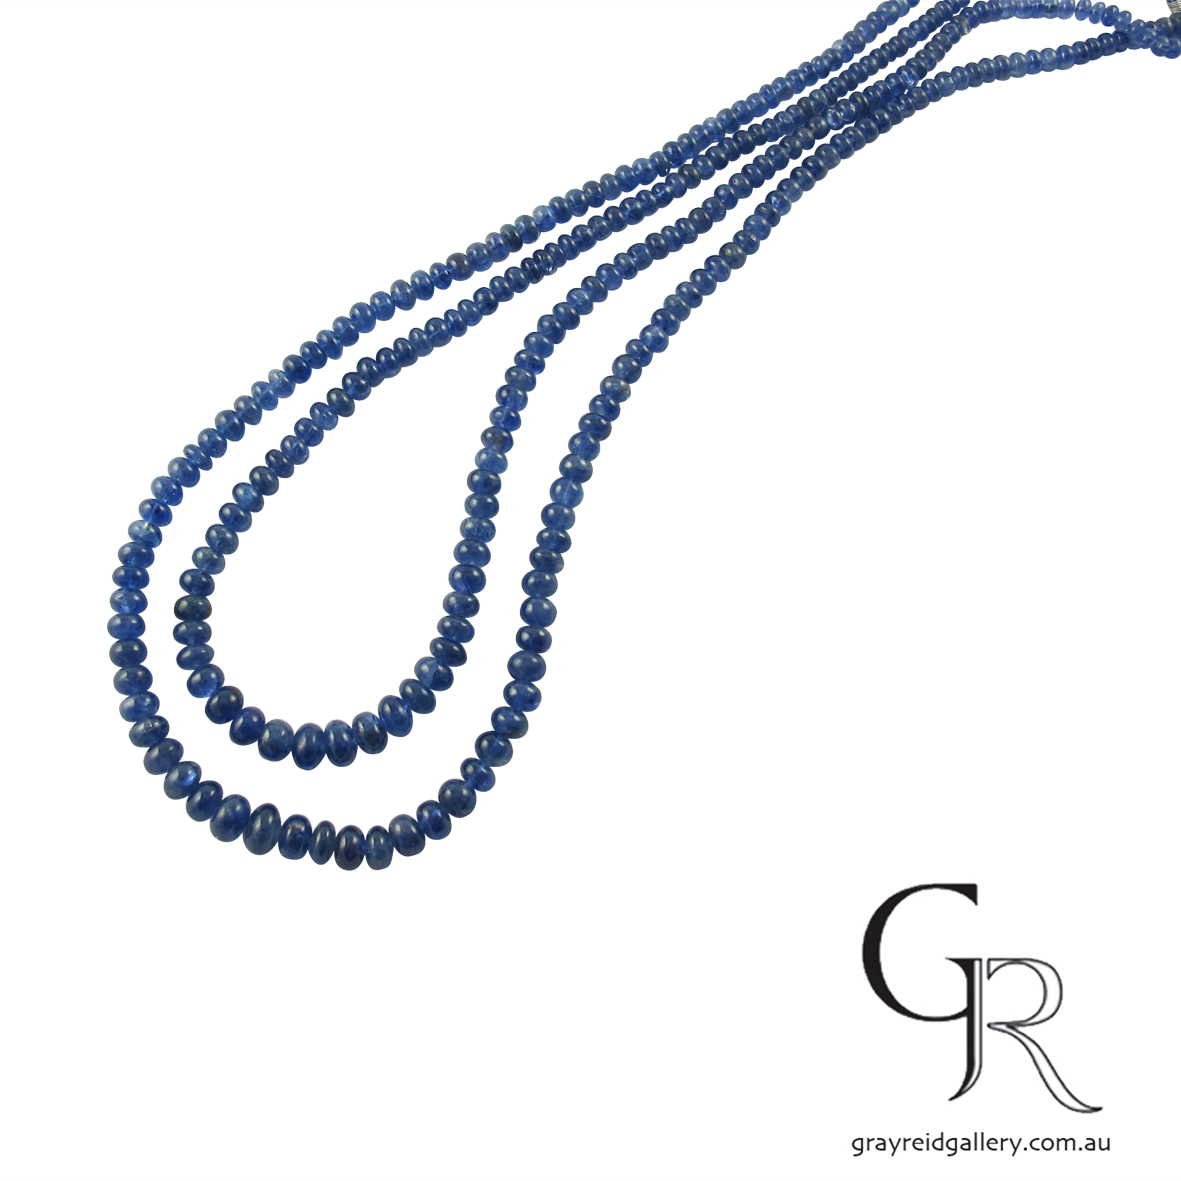 Polished Natural Burmese Sapphire Beads